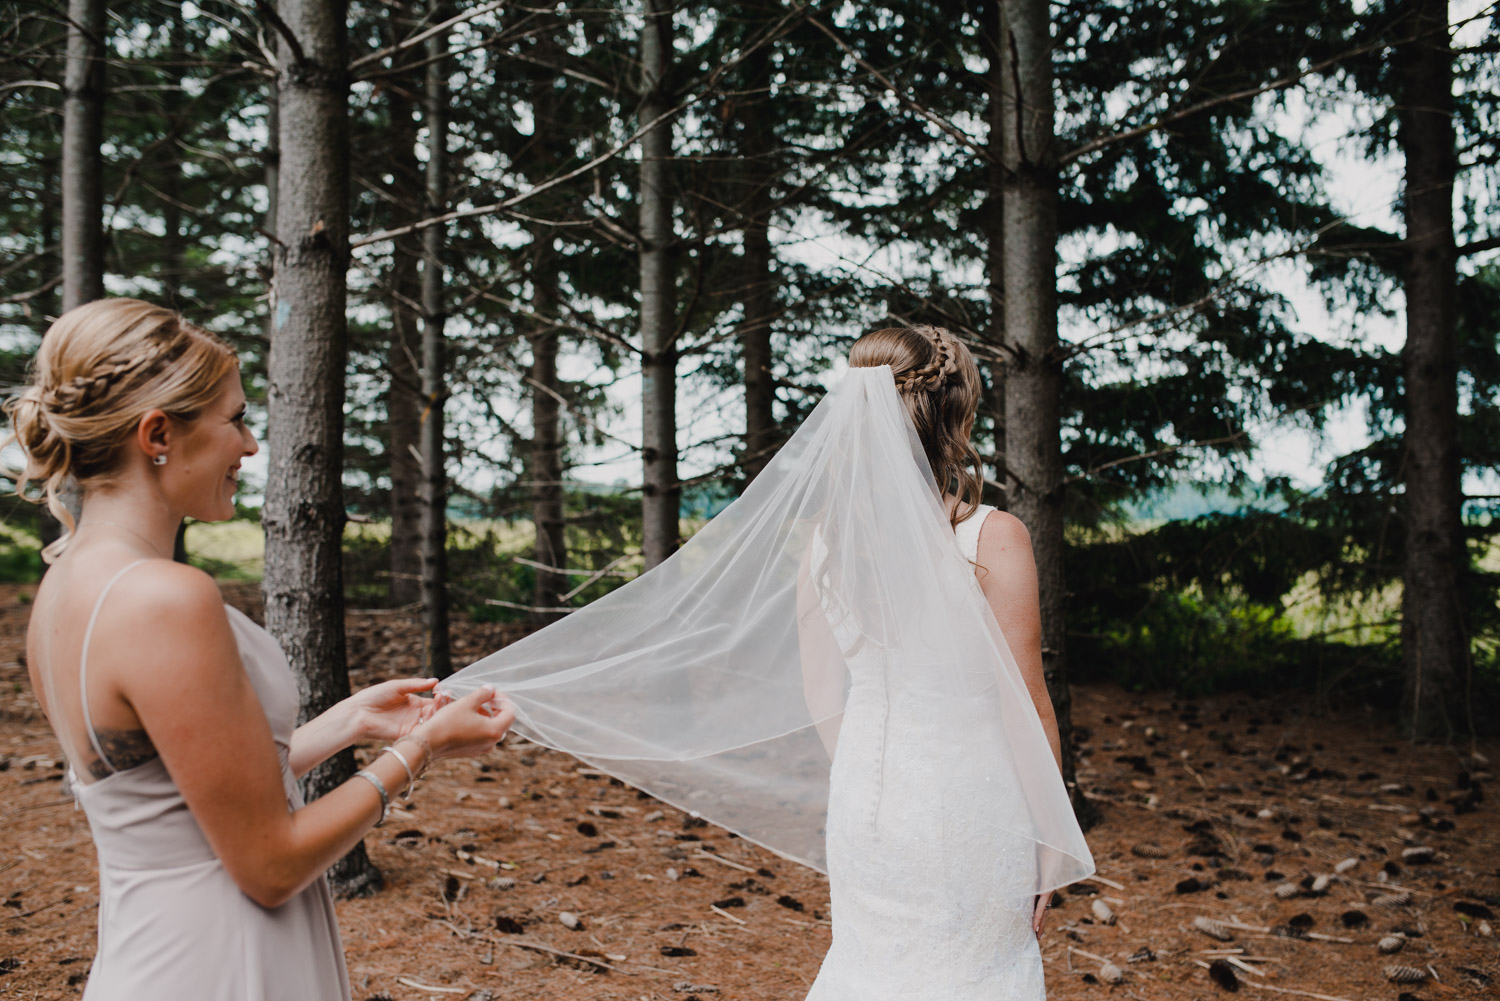 A bridesmaid fixes the brides veil